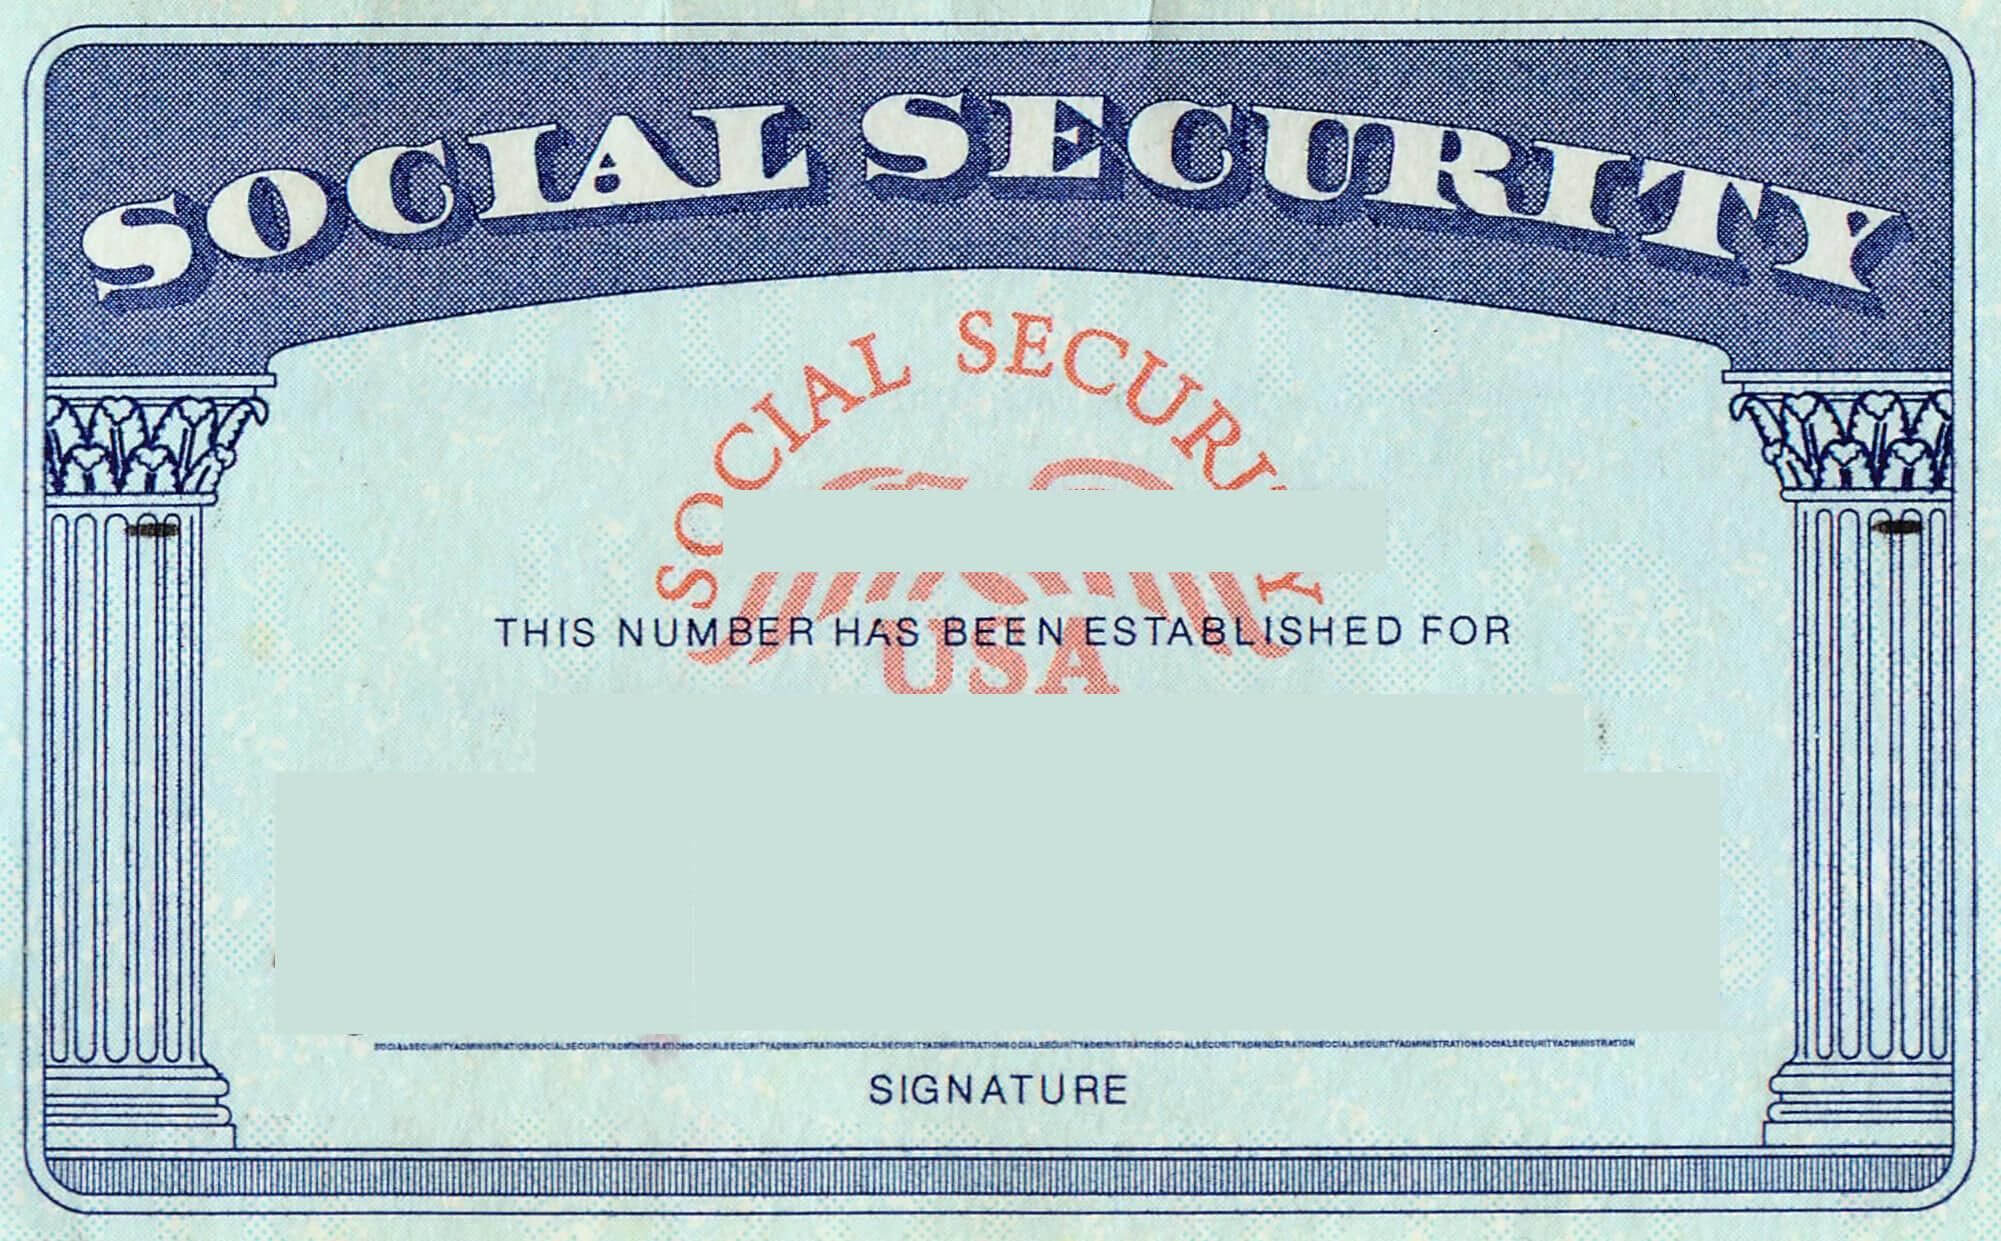 Blank Social Security Card Template | Social Security Card Within Editable Social Security Card Template